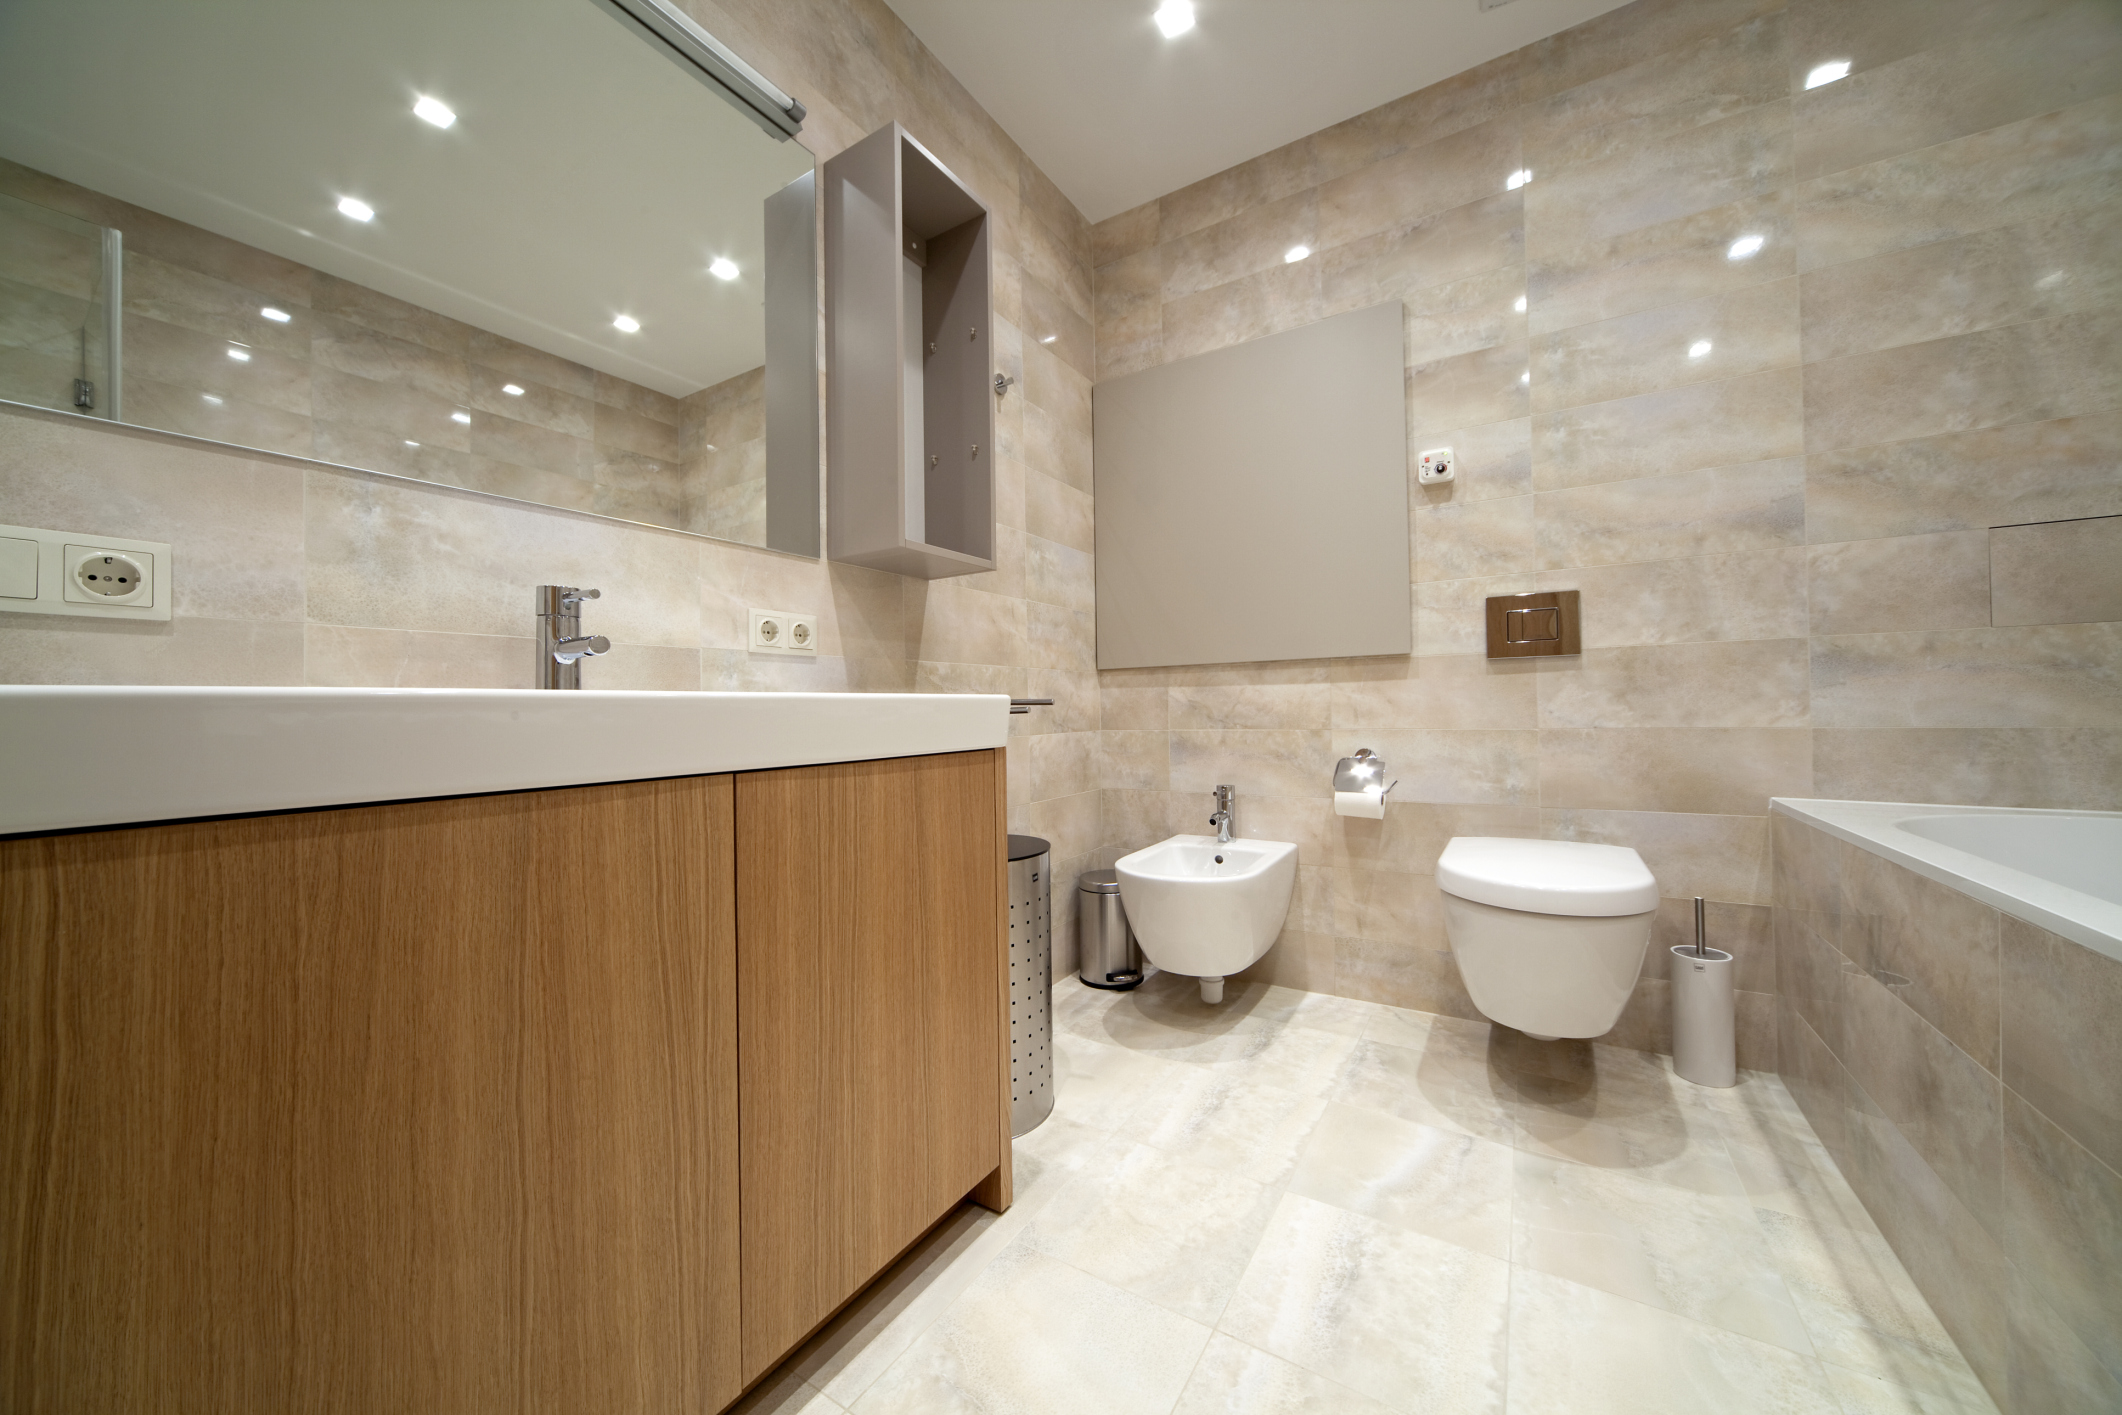 Remodel your bathroom despite being on a tight budget - Pictures of remodeled small bathrooms ...